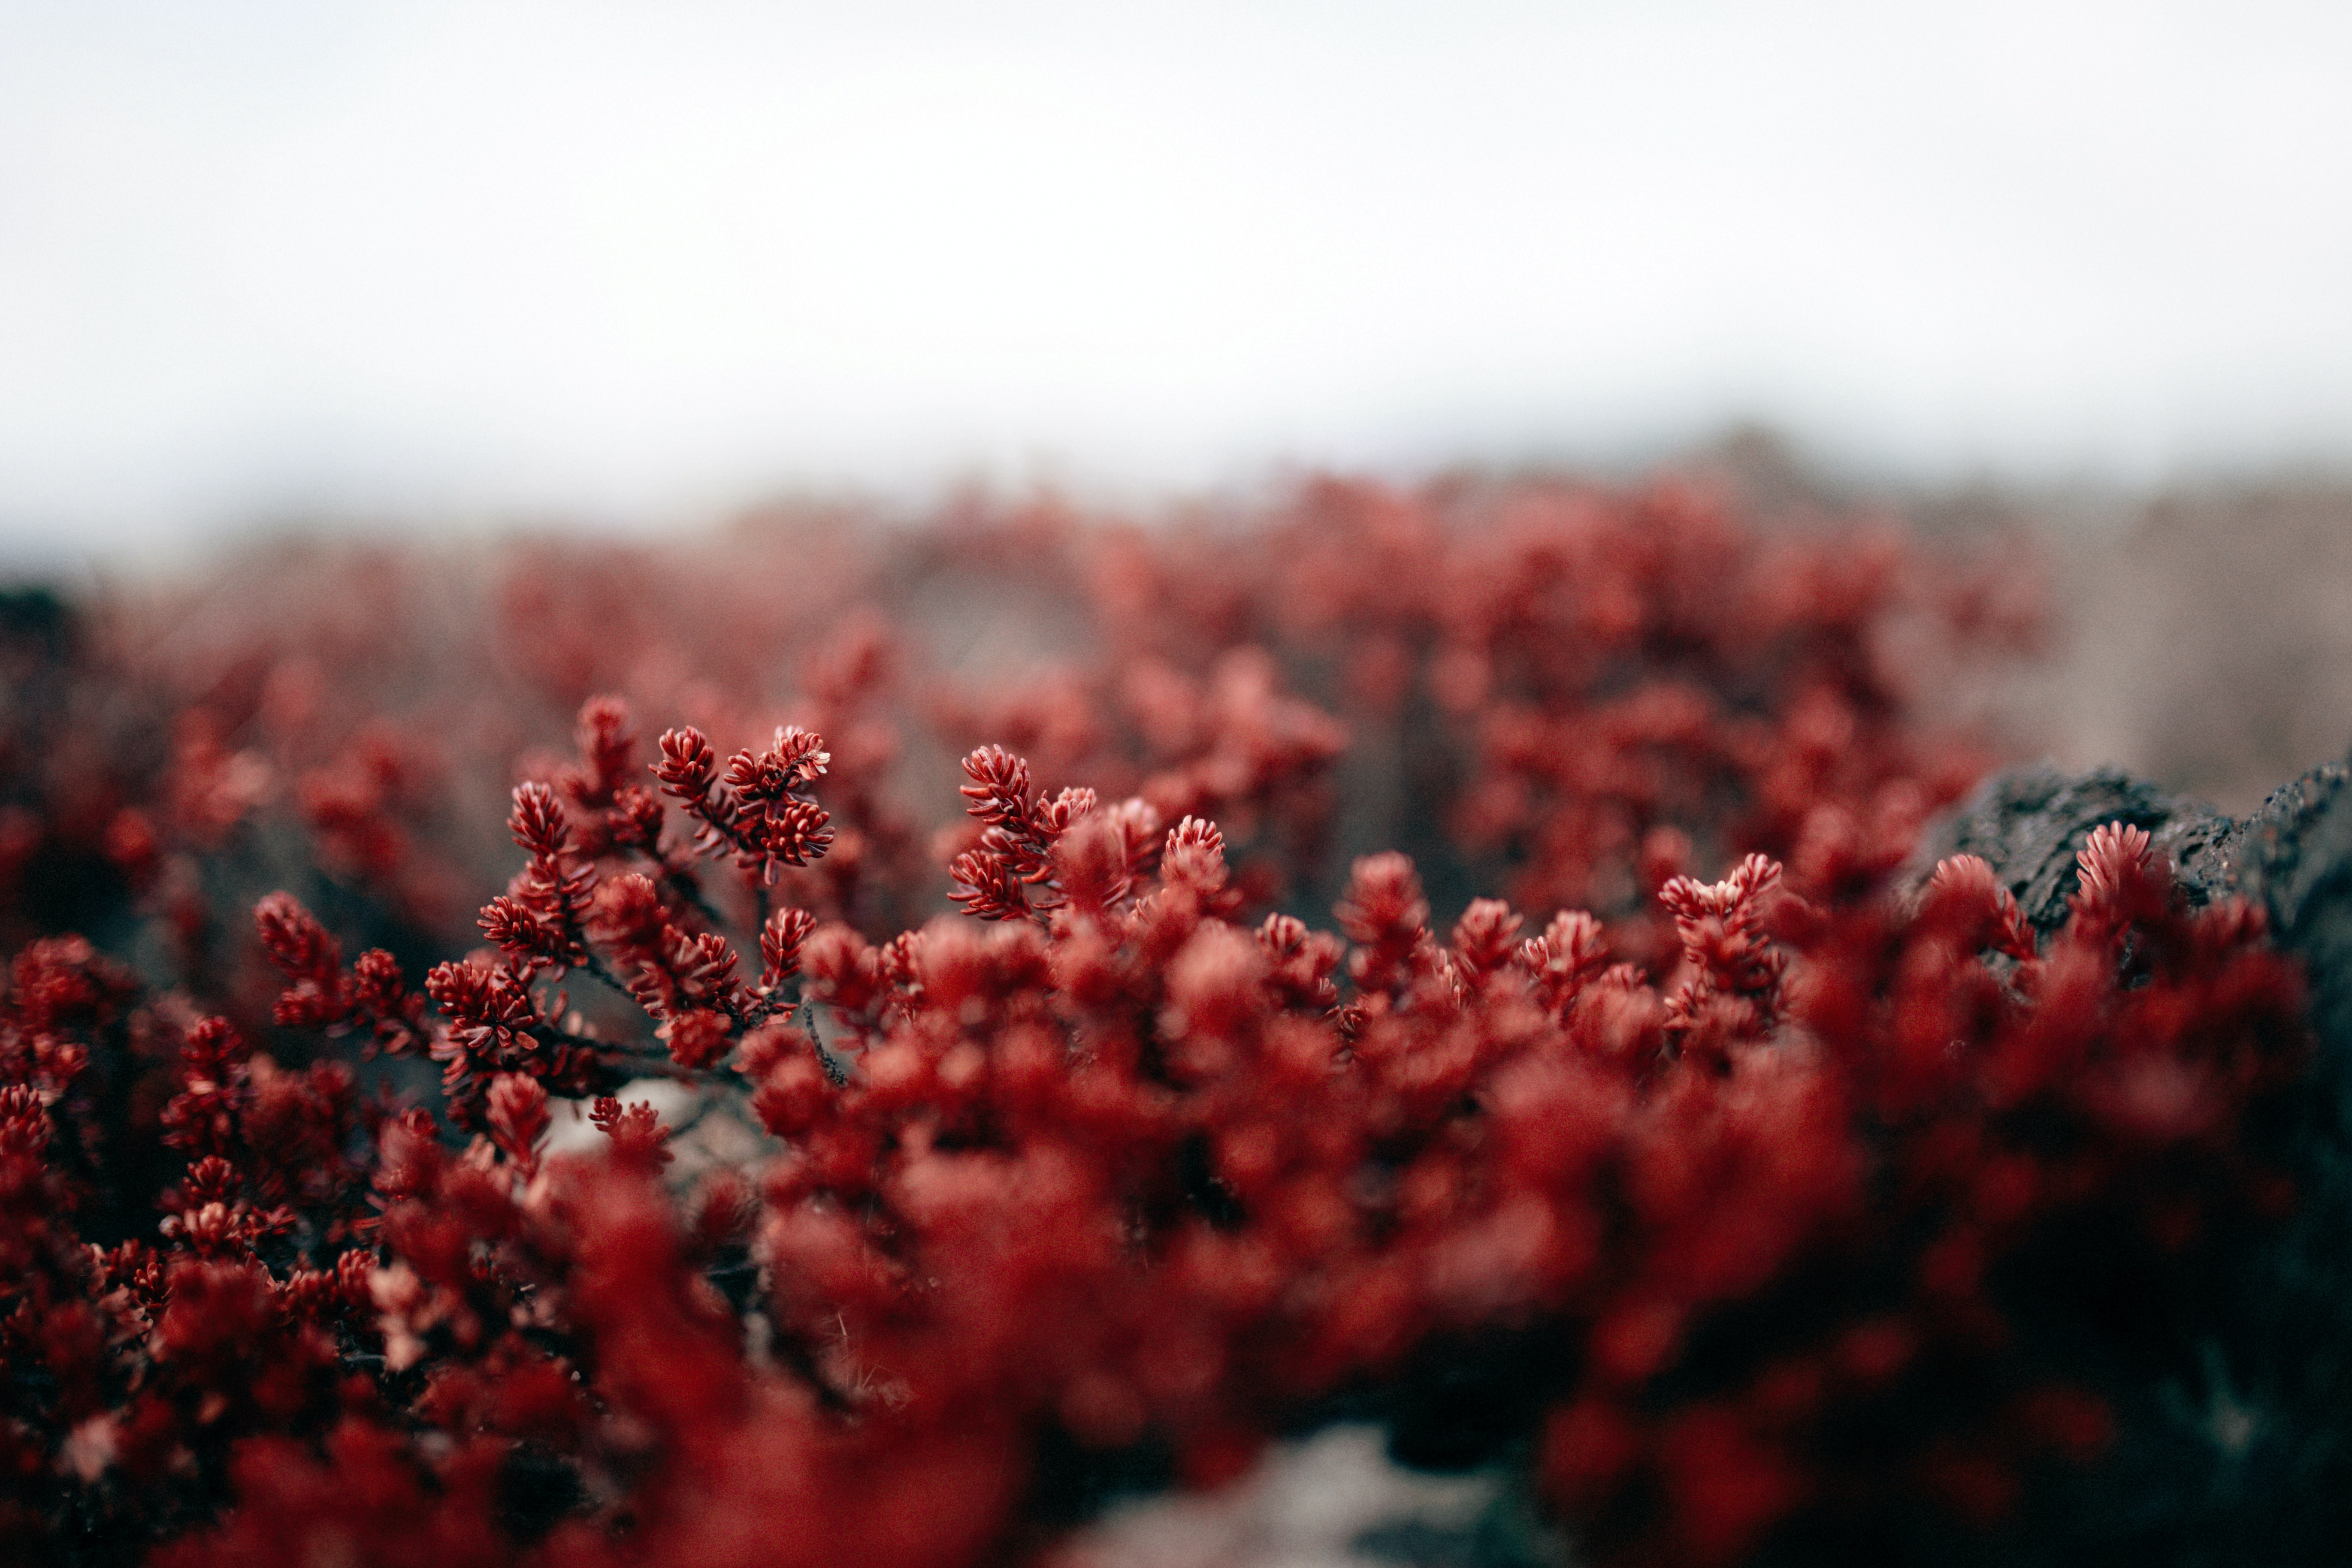 red petaled flowers in closeup photography